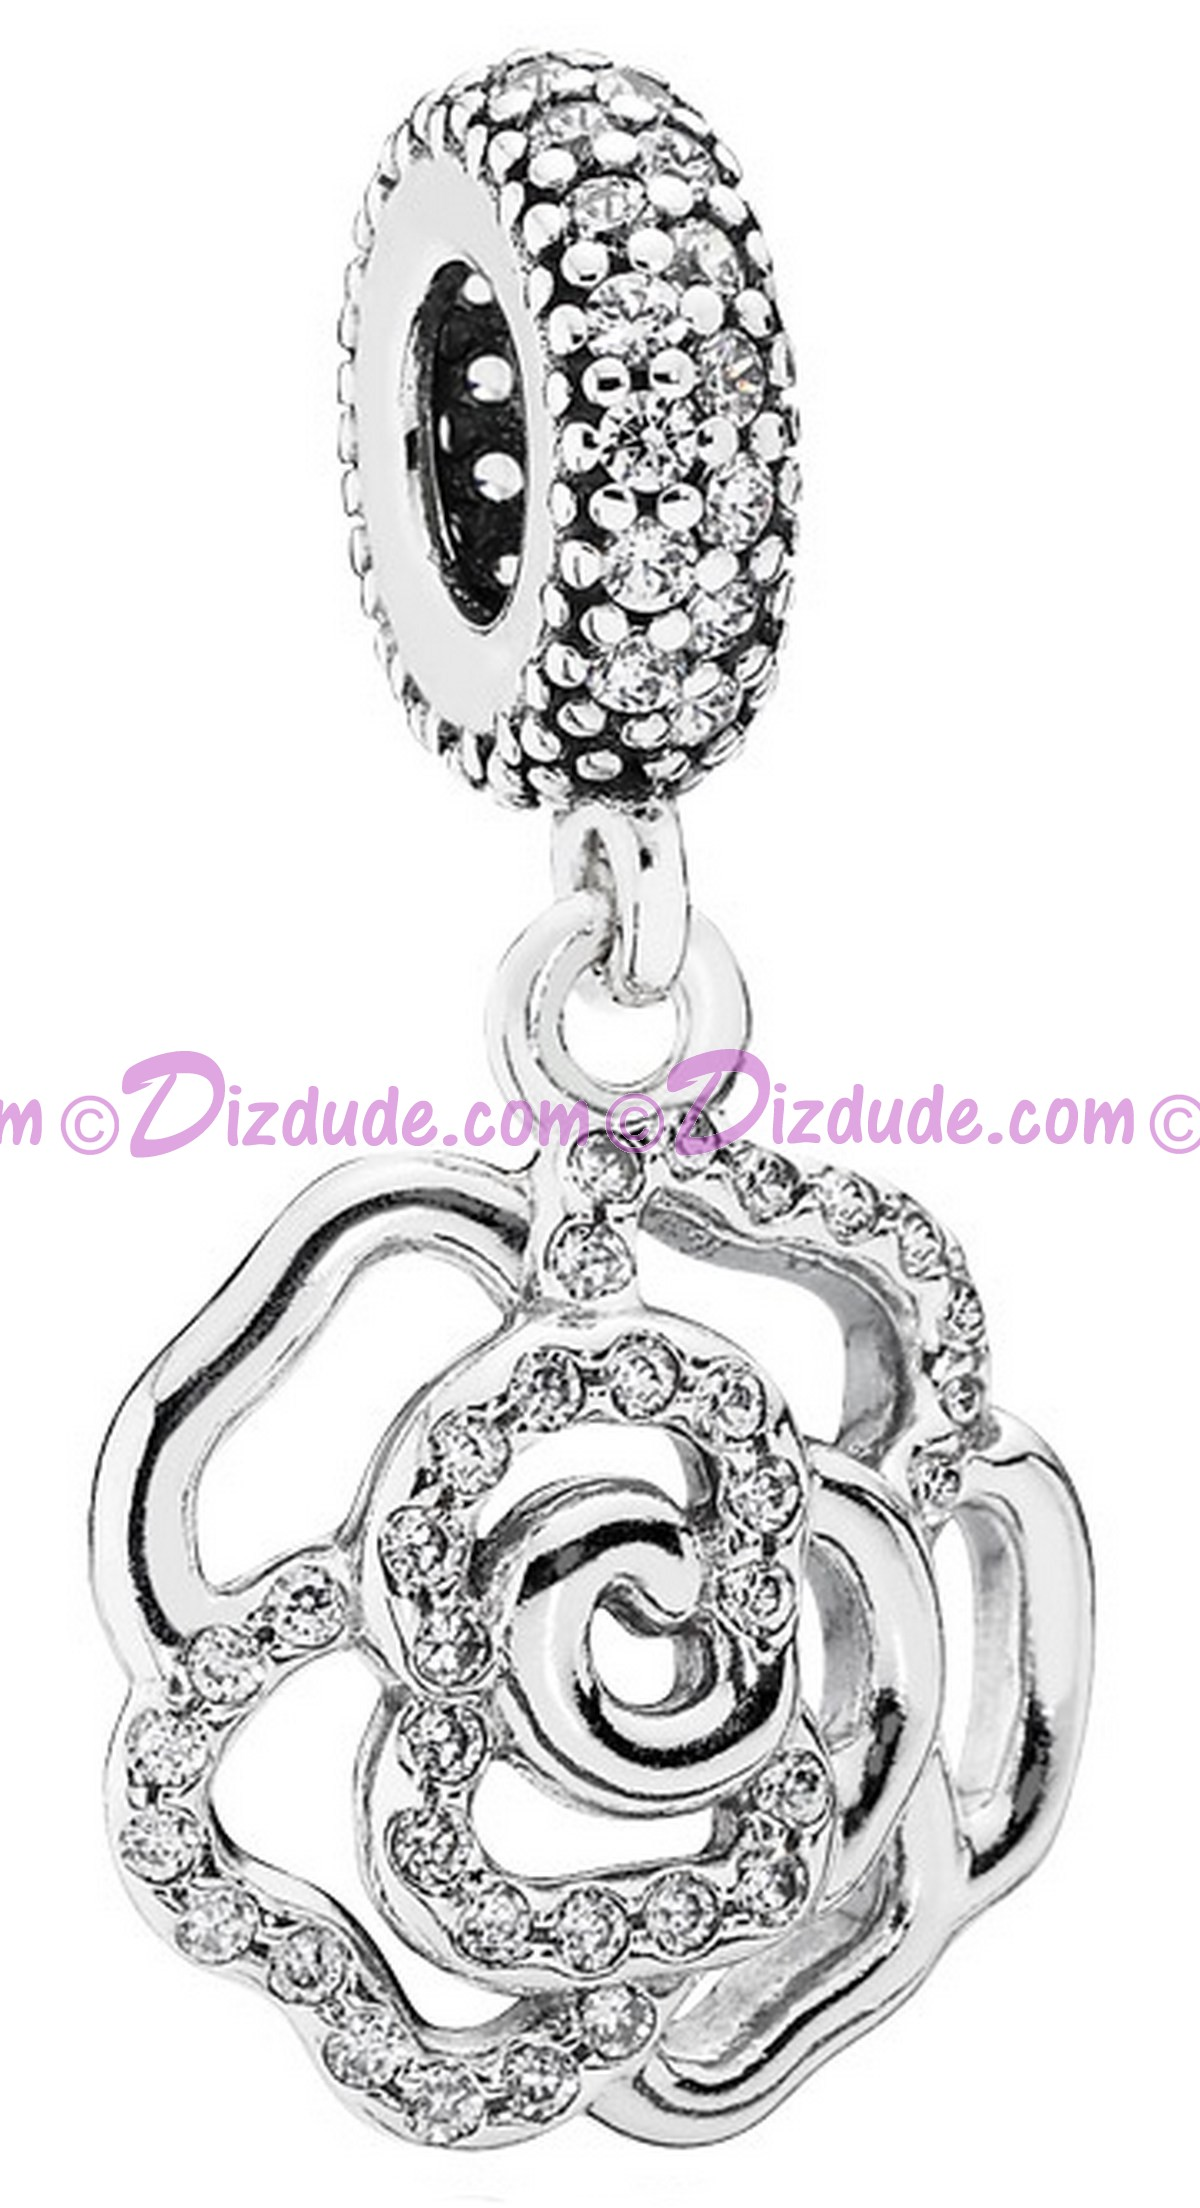 (SOLD OUT) Disney Pandora Shimmering Rose Dangle Charm with Cubic Zirconias - Mothers Day Collection 2015